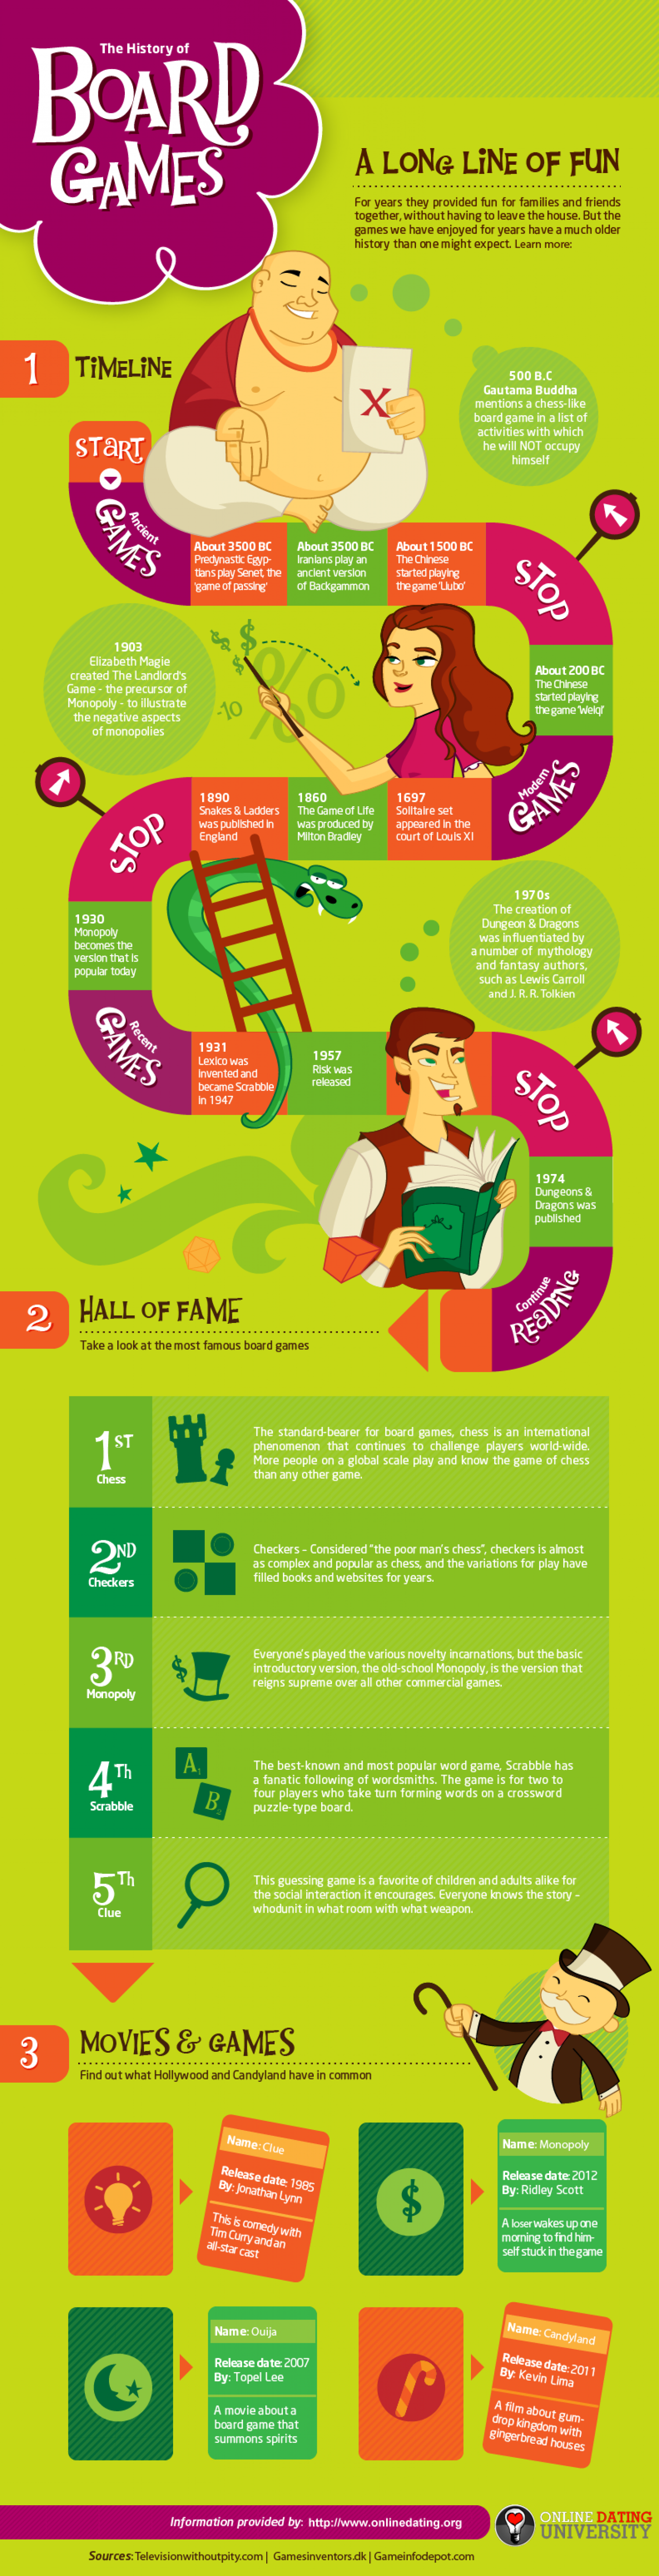 The History of Board Games Infographic